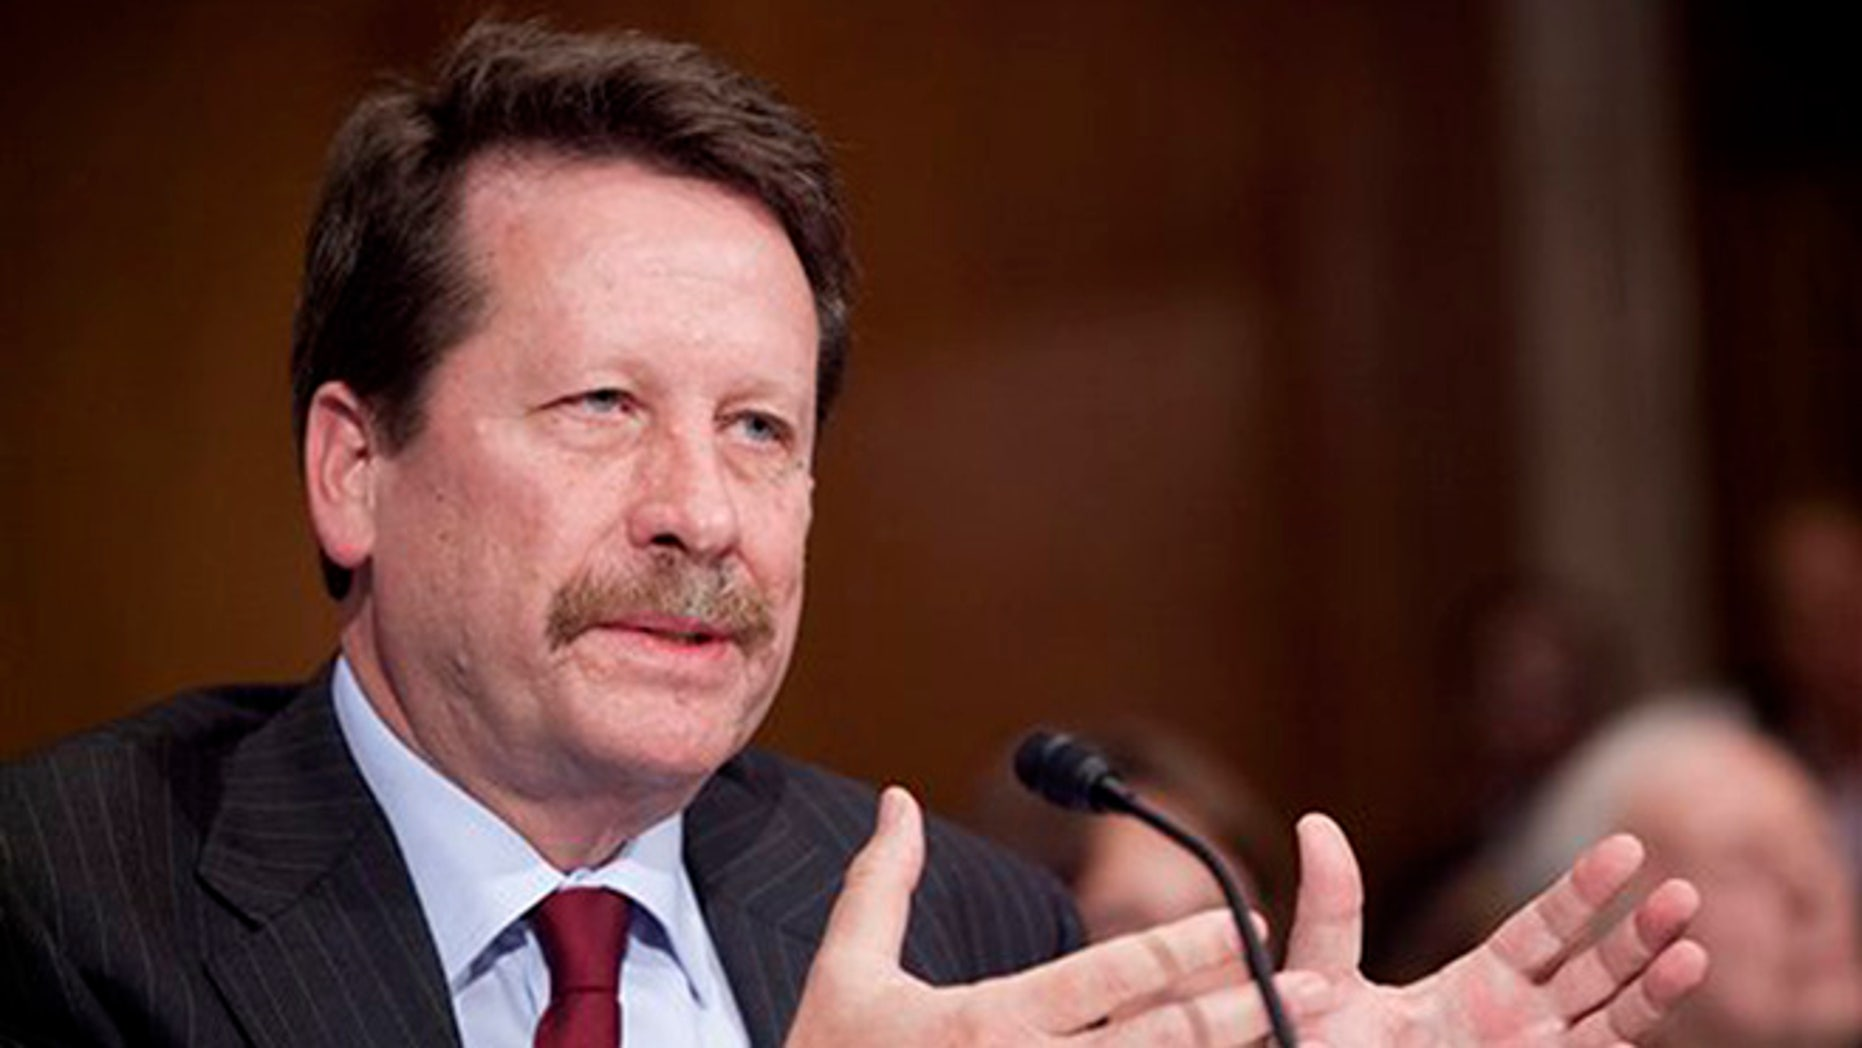 FILE - In this Nov. 17, 2015 file photo, Dr. Robert Califf, President Barack Obama's nominee to lead the Food and Drug Administration (FDA), testifies on Capitol Hill in Washington. The Senate has confirmed Califf to be commissioner of the FDA. Senators voted 89-4 Wednesday, Feb. 24, 2016, to confirm Califf after a handful of Democrats delayed action in a protest over the agency's inaction on the abuse of opioid painkillers.  (AP Photo/Pablo Martinez Monsivais, File)